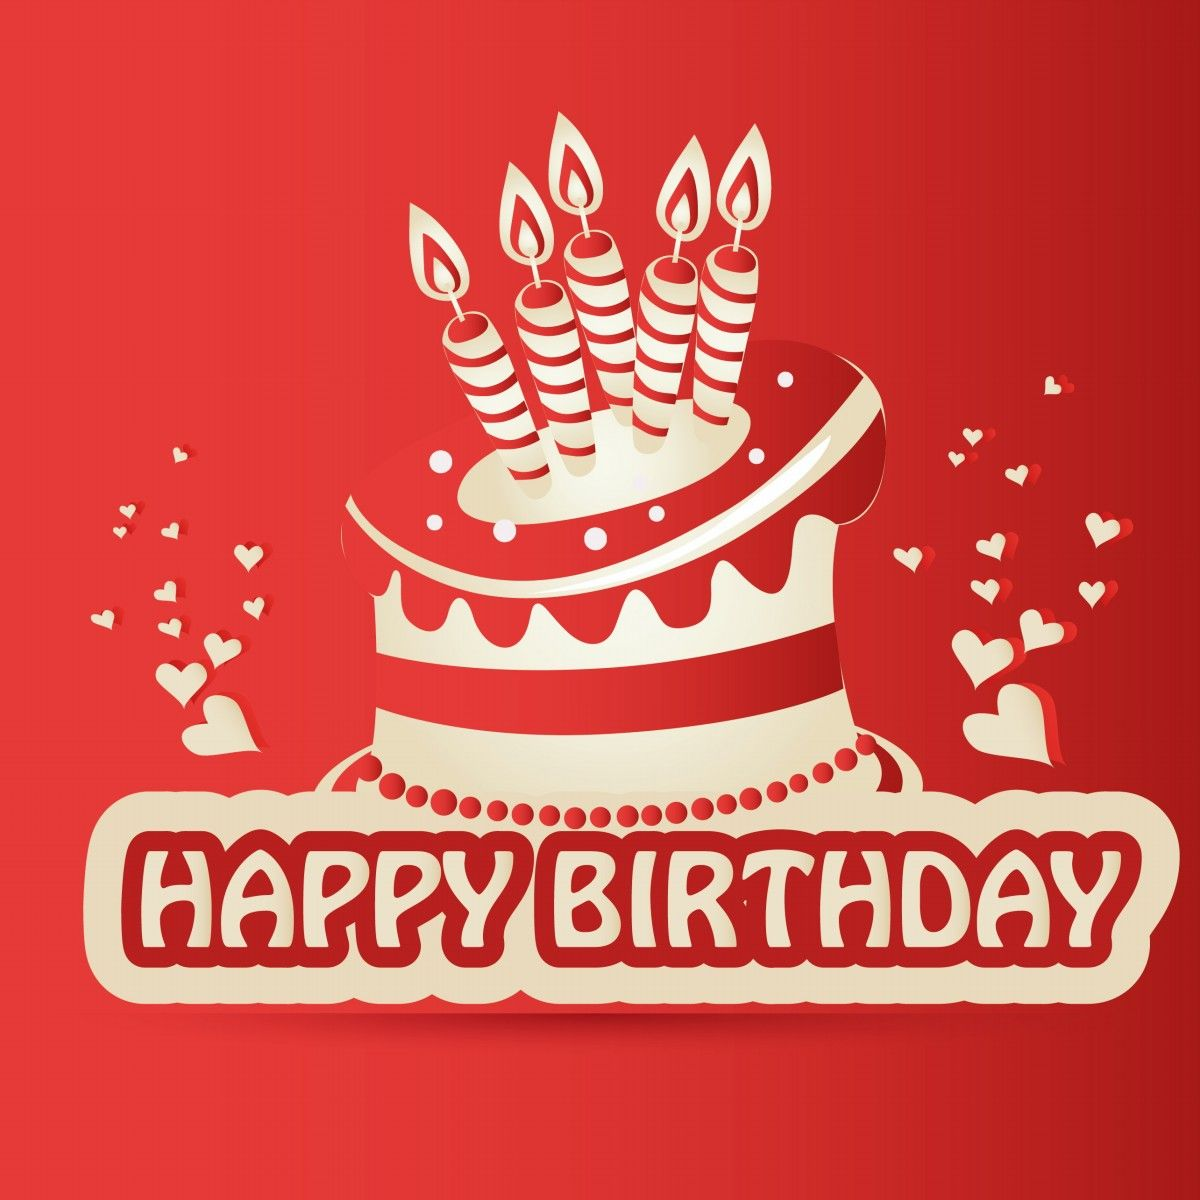 Happy Birthday Wishes: Ecards4u Provides Happy Birthday Quotes, Happy Birthday